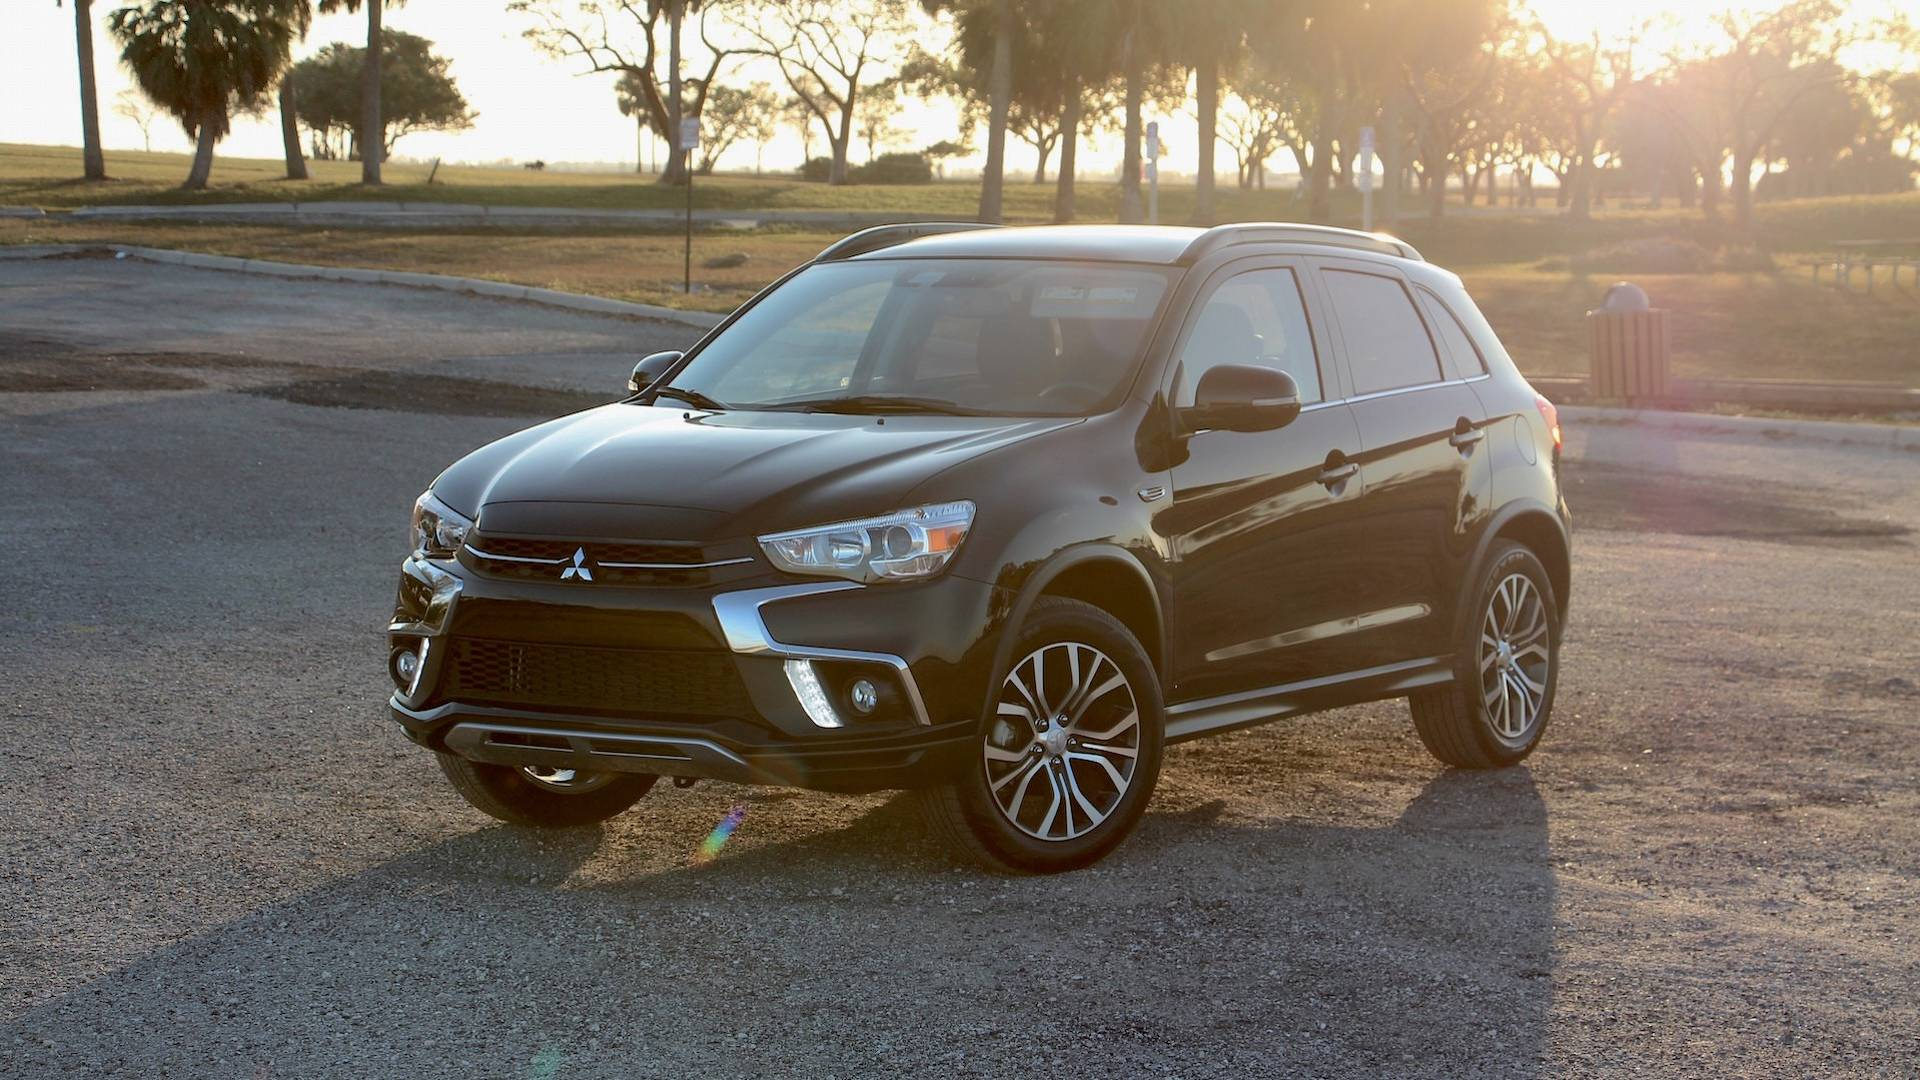 2018 Mitsubishi Outlander Sport Review: Cheap, Old, But